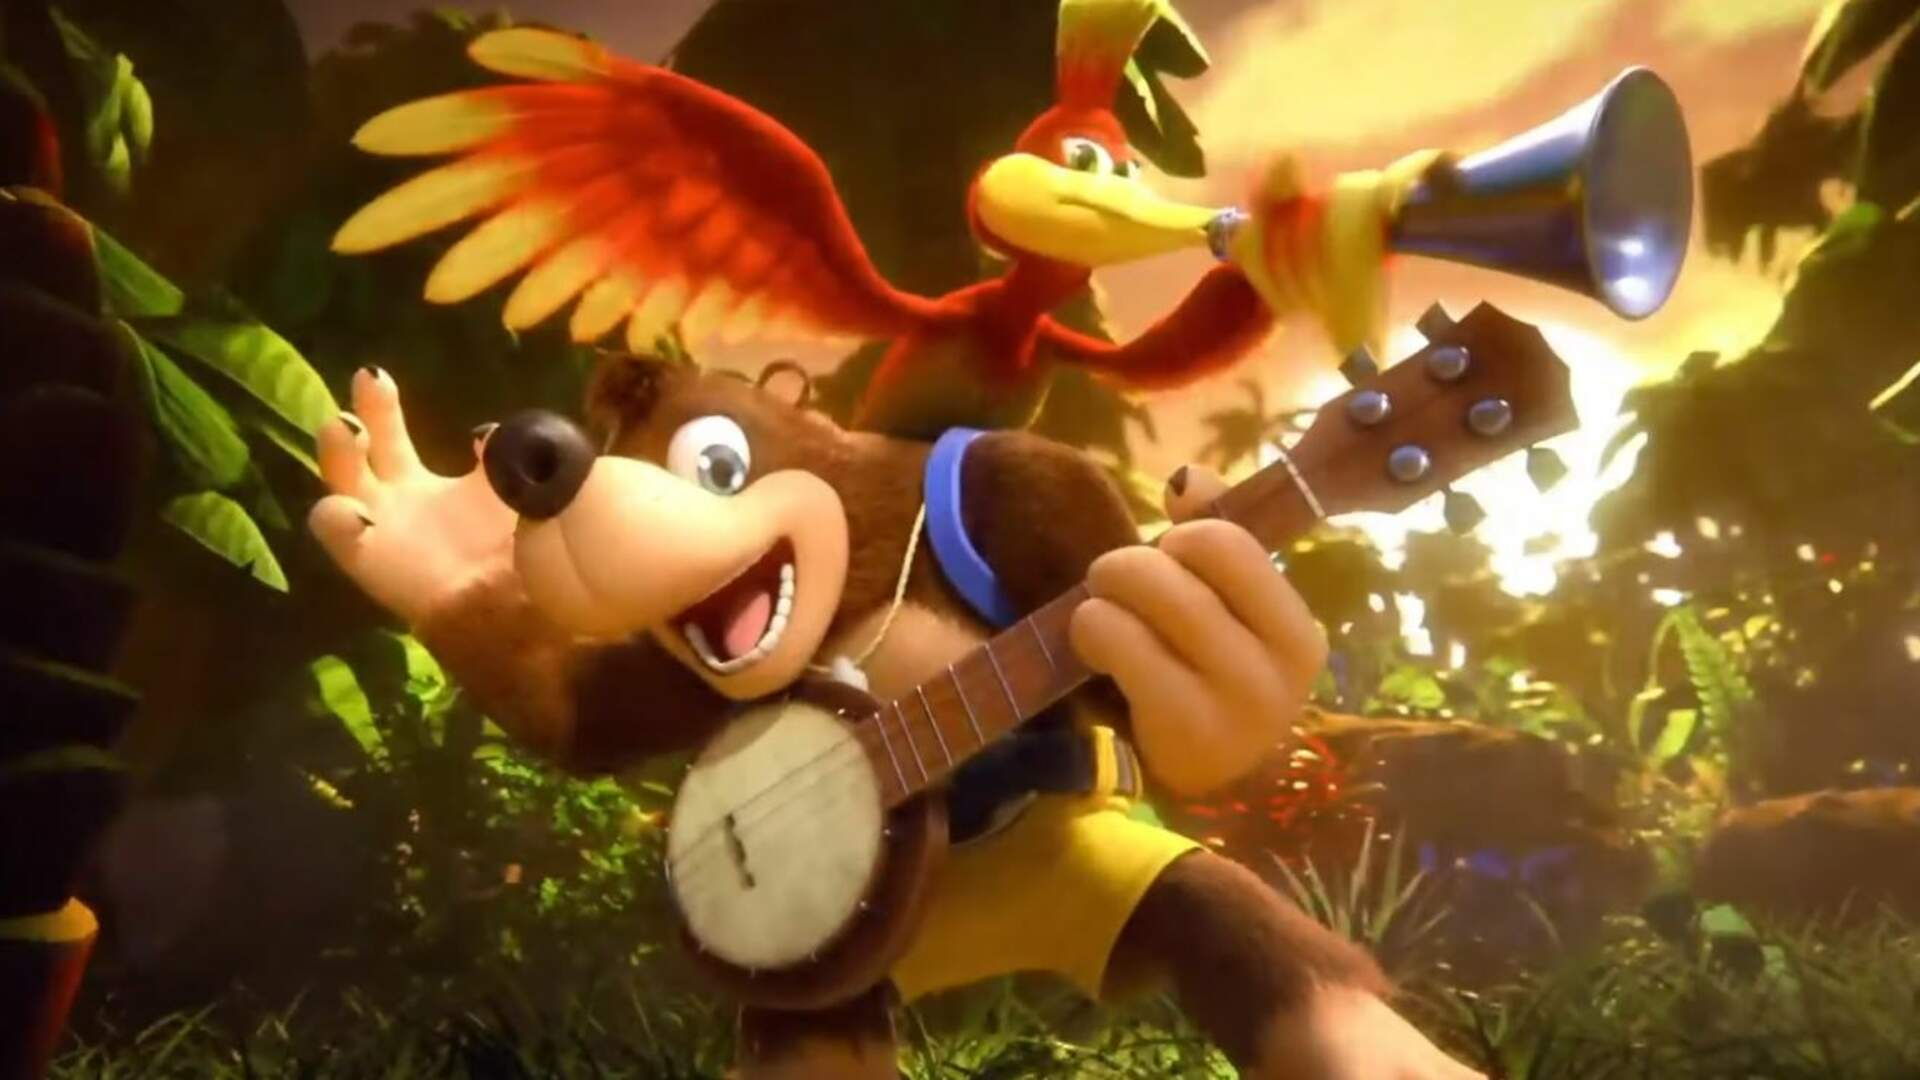 Banjo-Kazooie Bring a Beatdown to Super Smash Bros. Ultimate This Fall